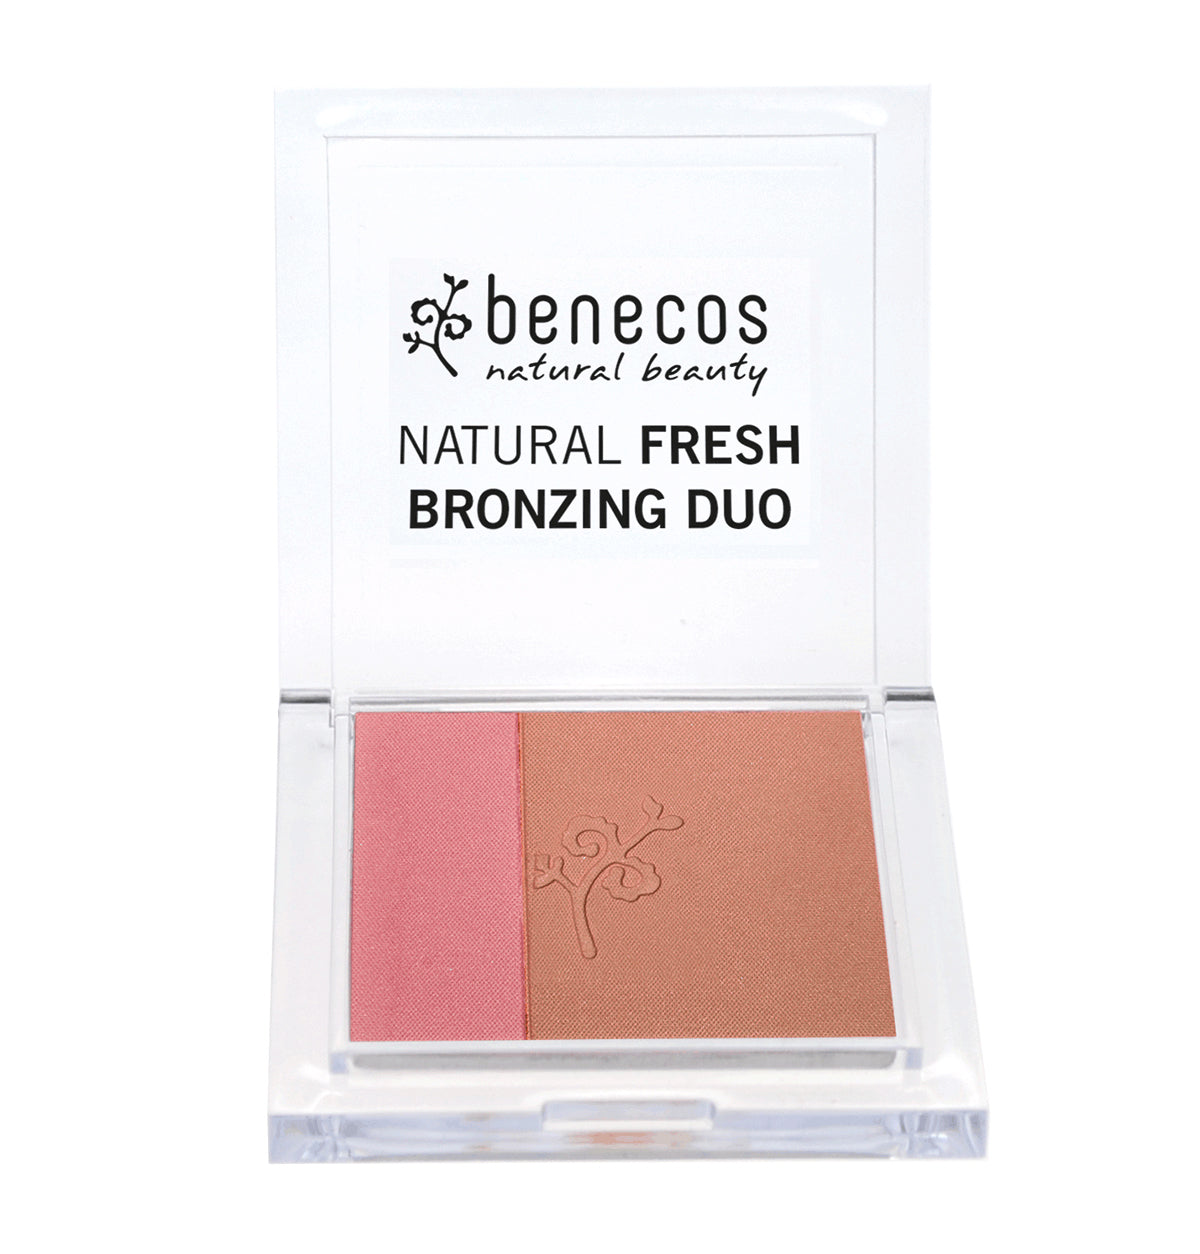 Benecos Natural Fresh Bronzing Duo - Ibiza Nights (8g)